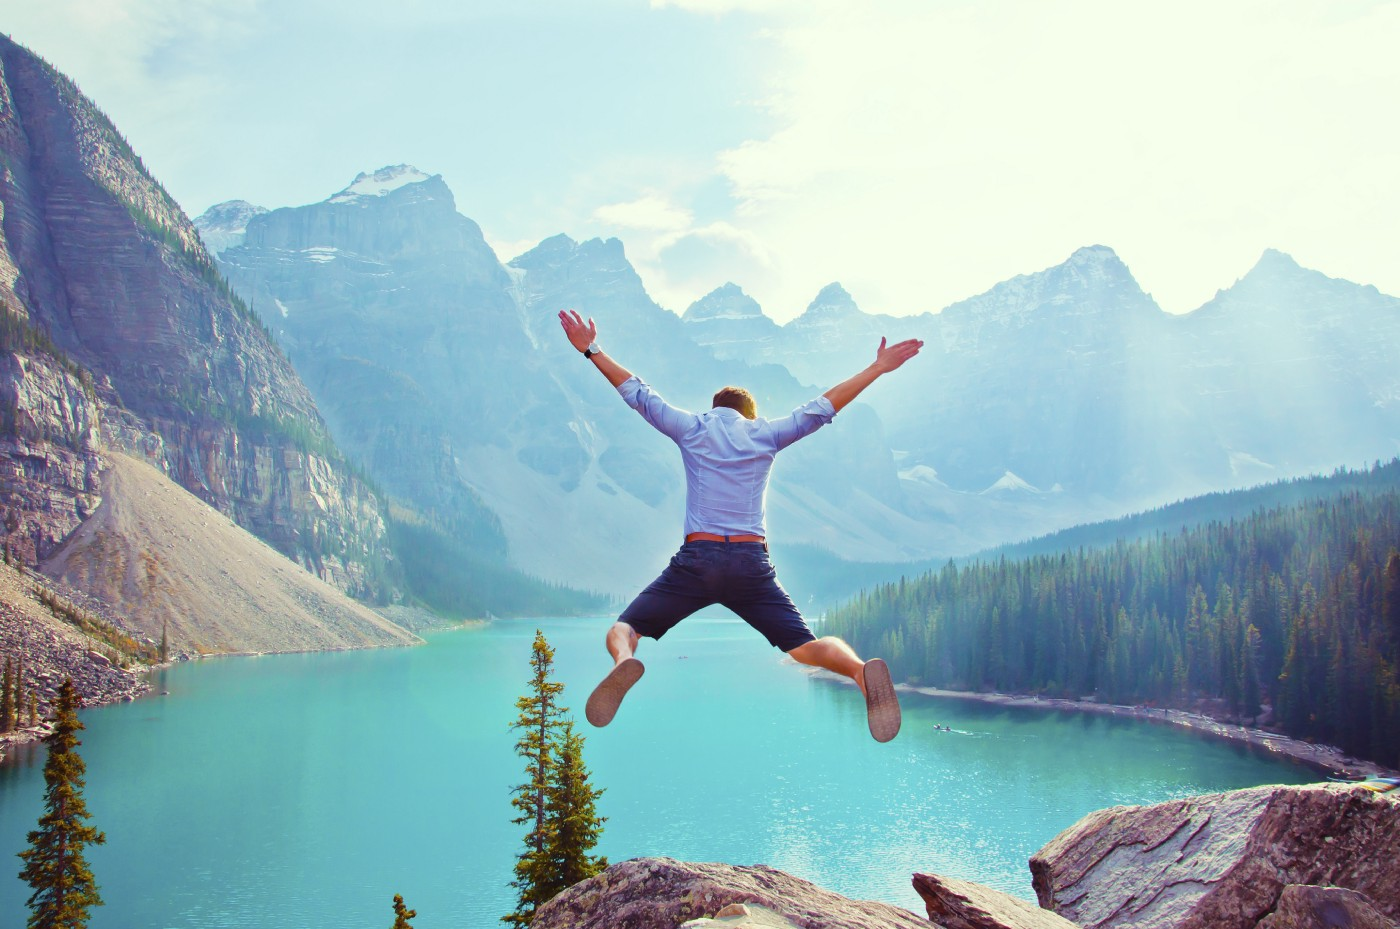 man jumping into a mountain lake from a high ledge